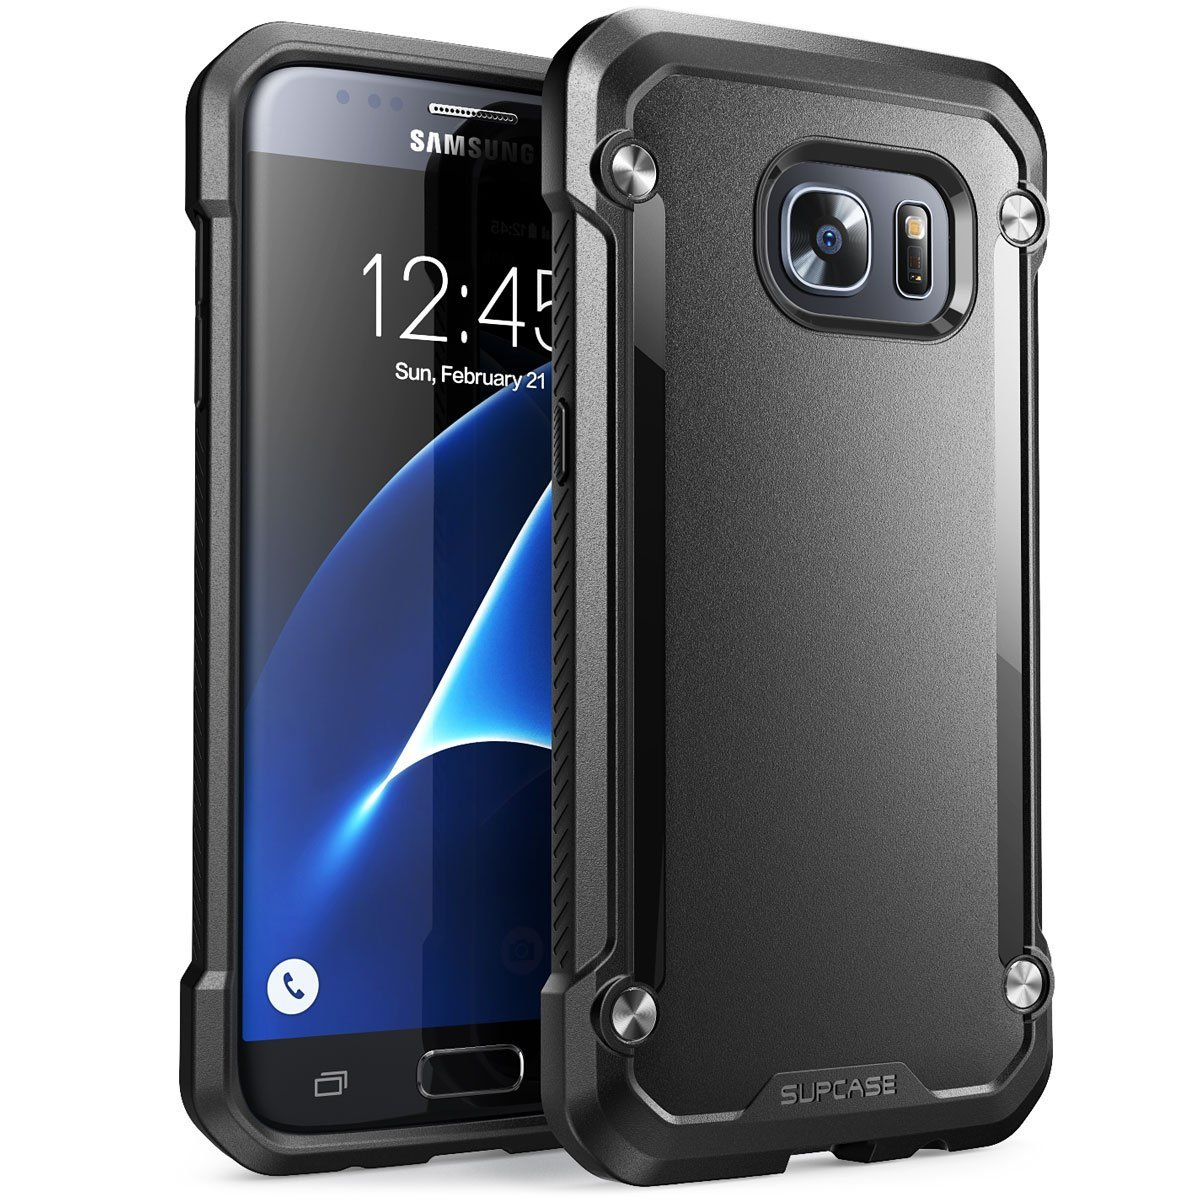 Best Samsung Galaxy S7 Cases Phandroid